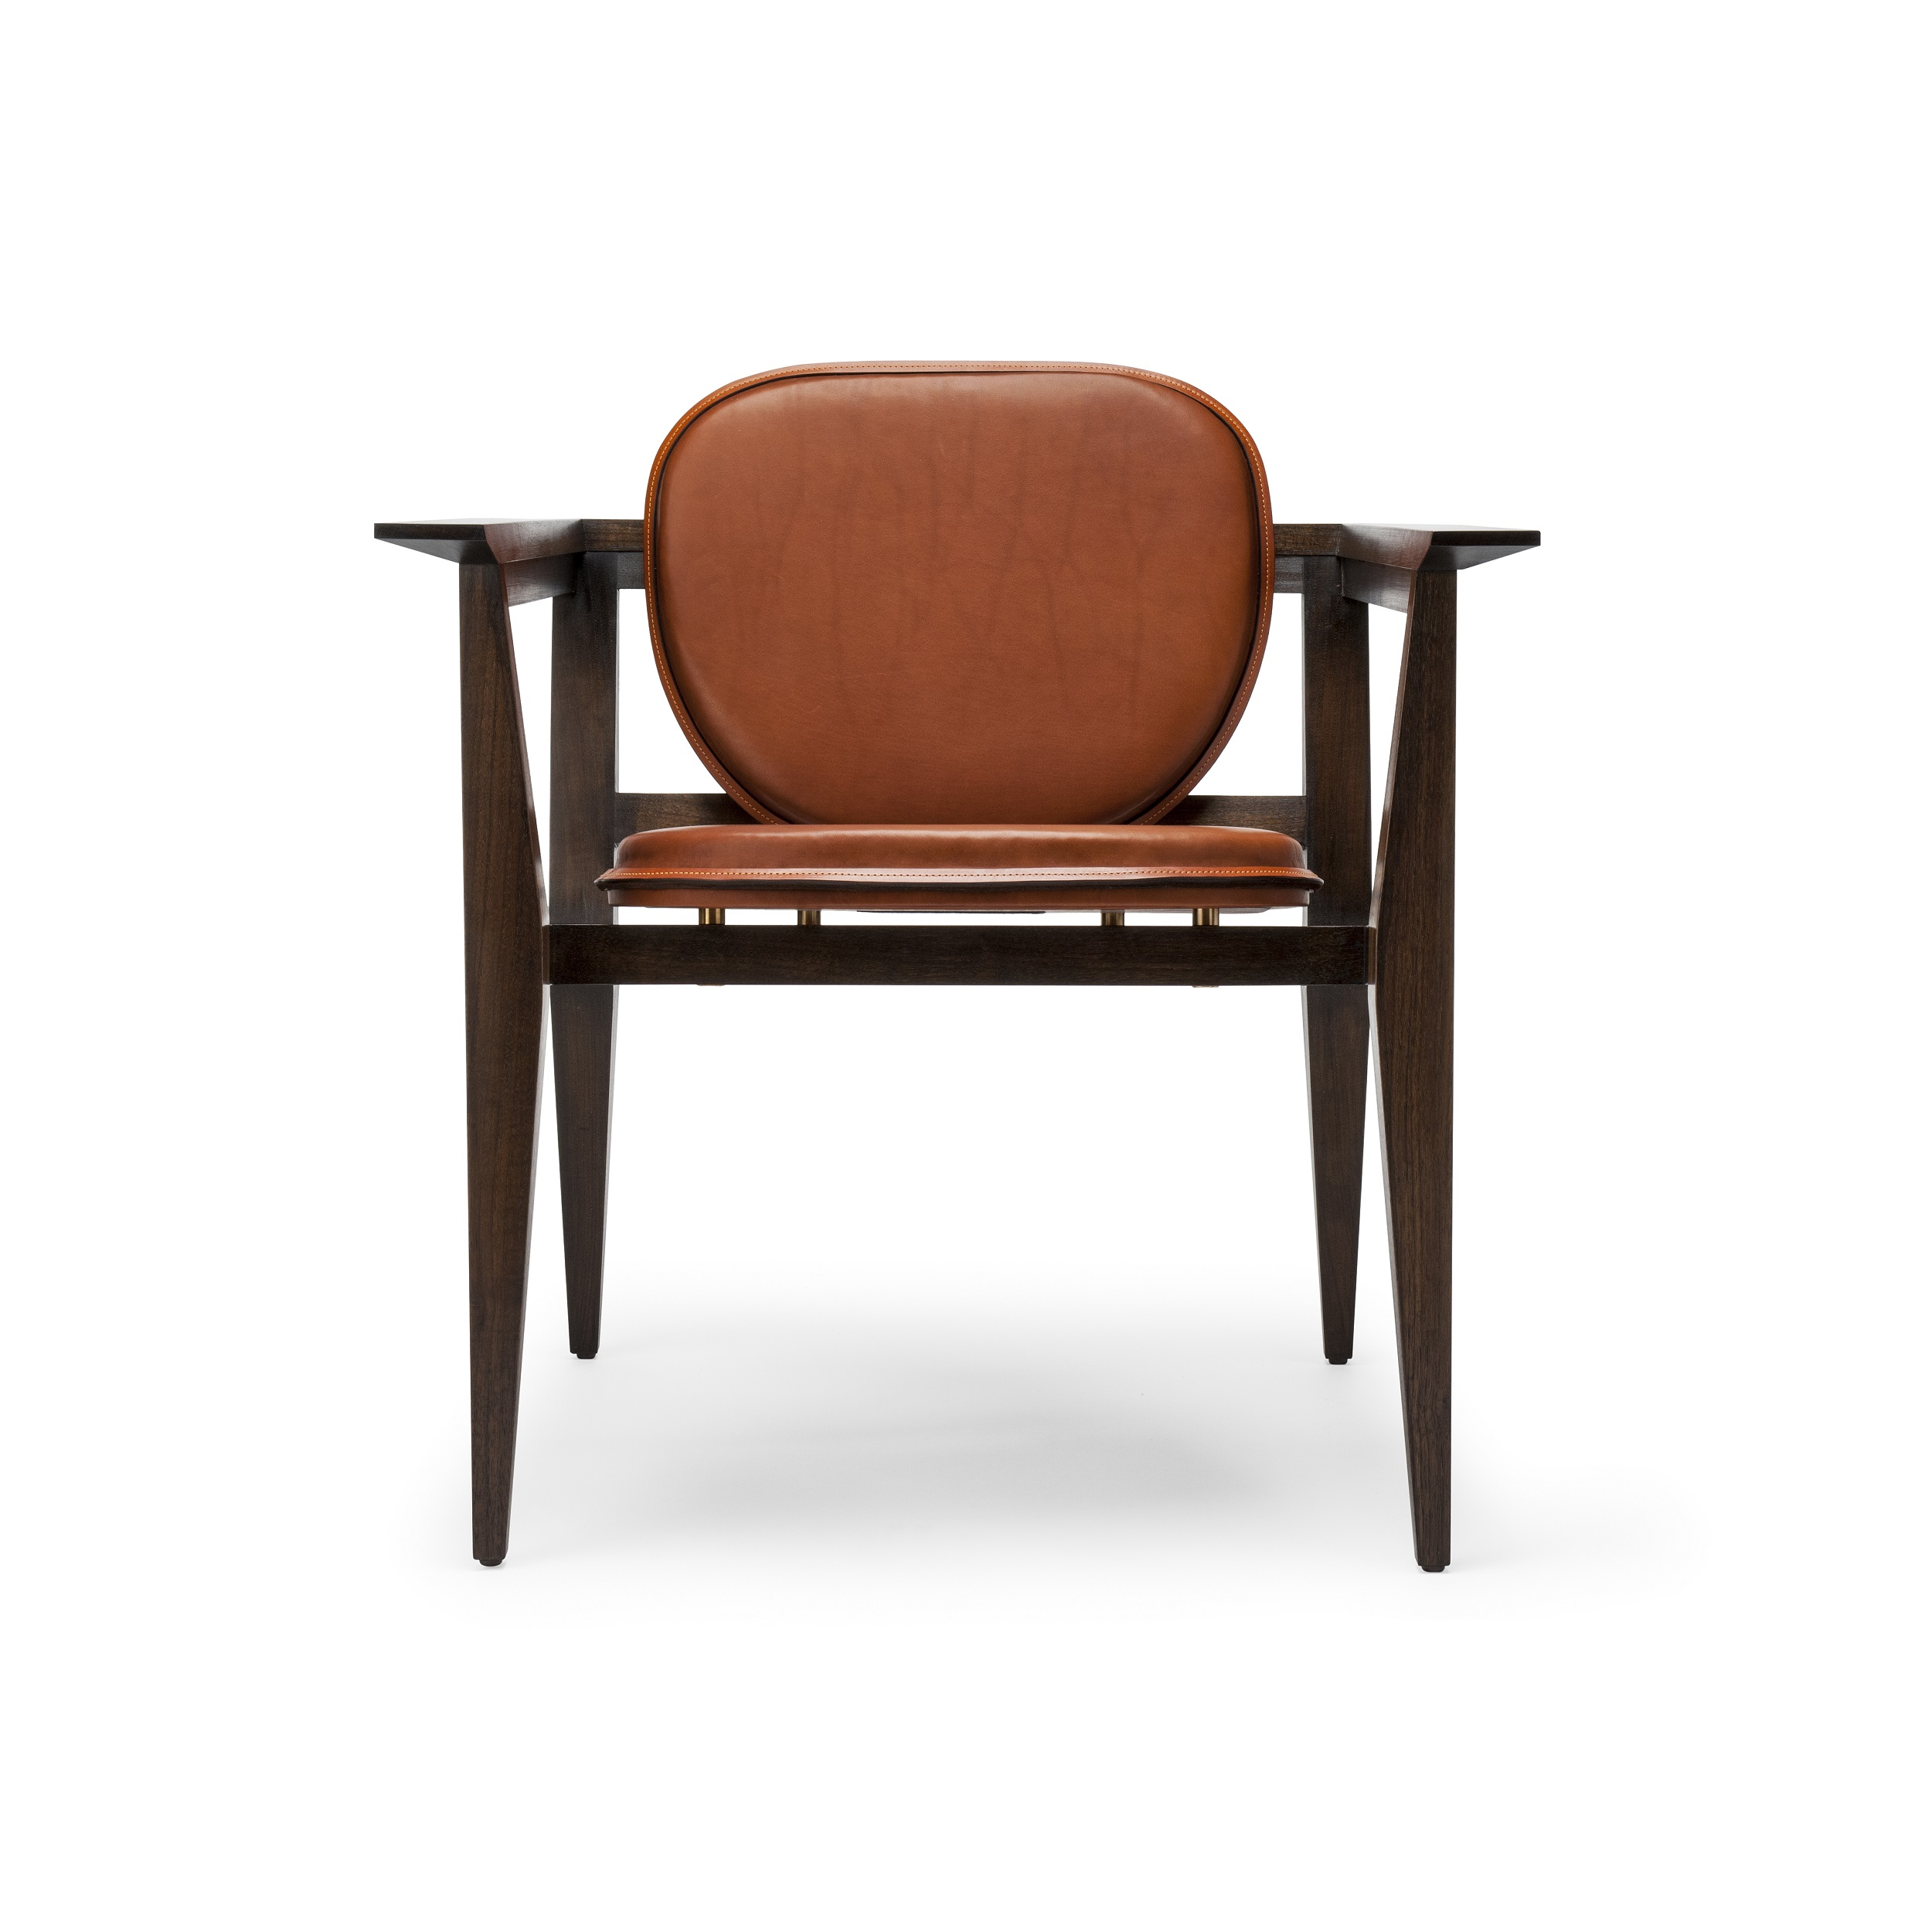 Constructor Chair